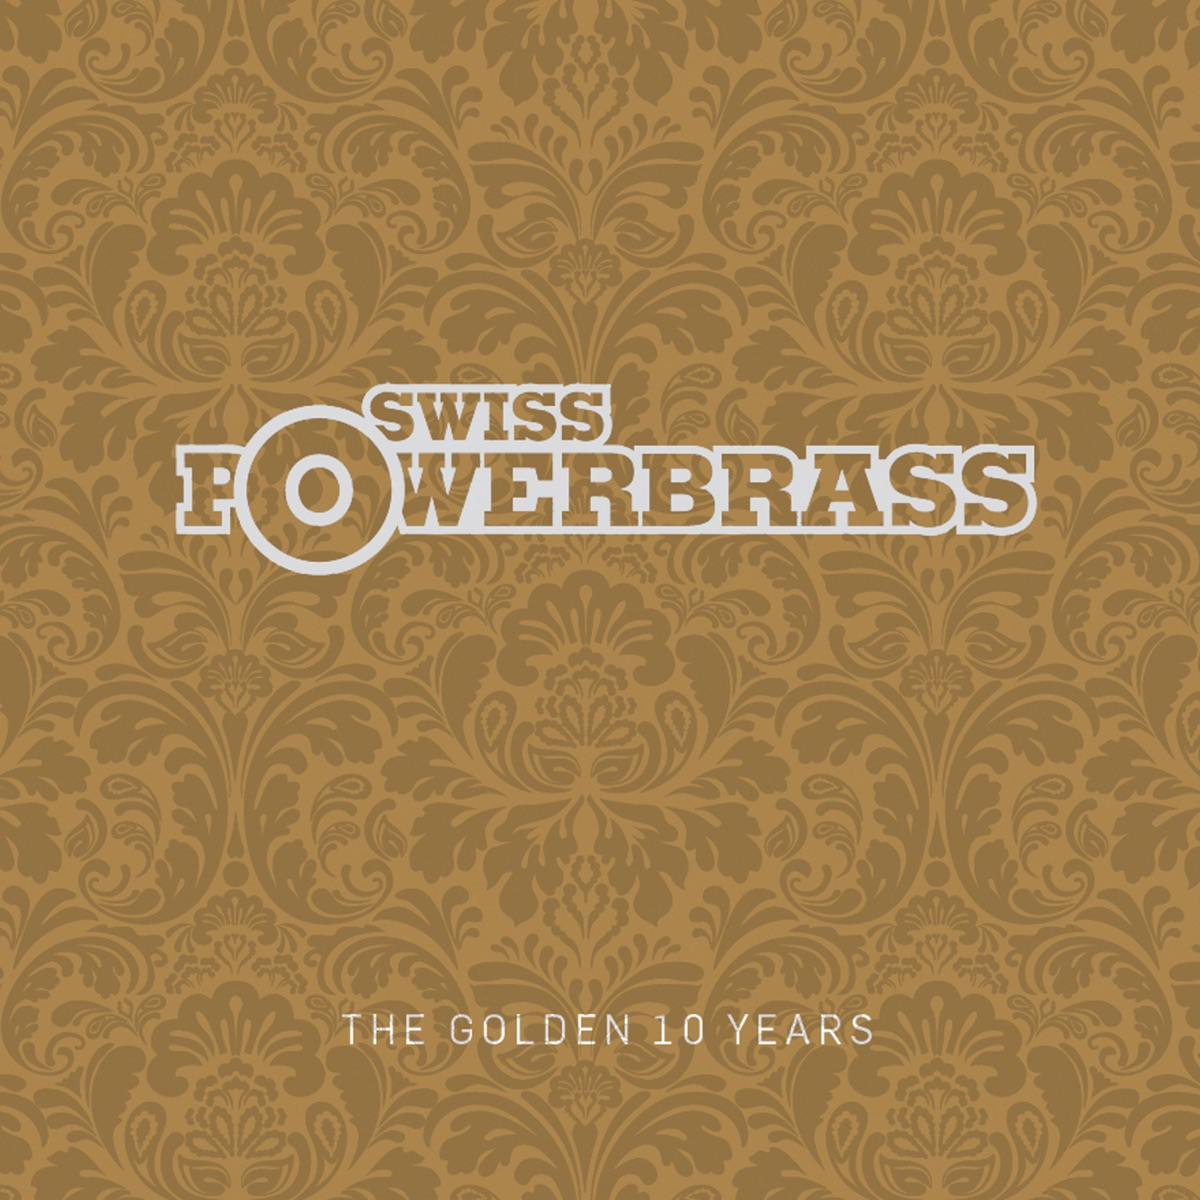 The Golden 10 Years Swiss Powerbrass CD cover